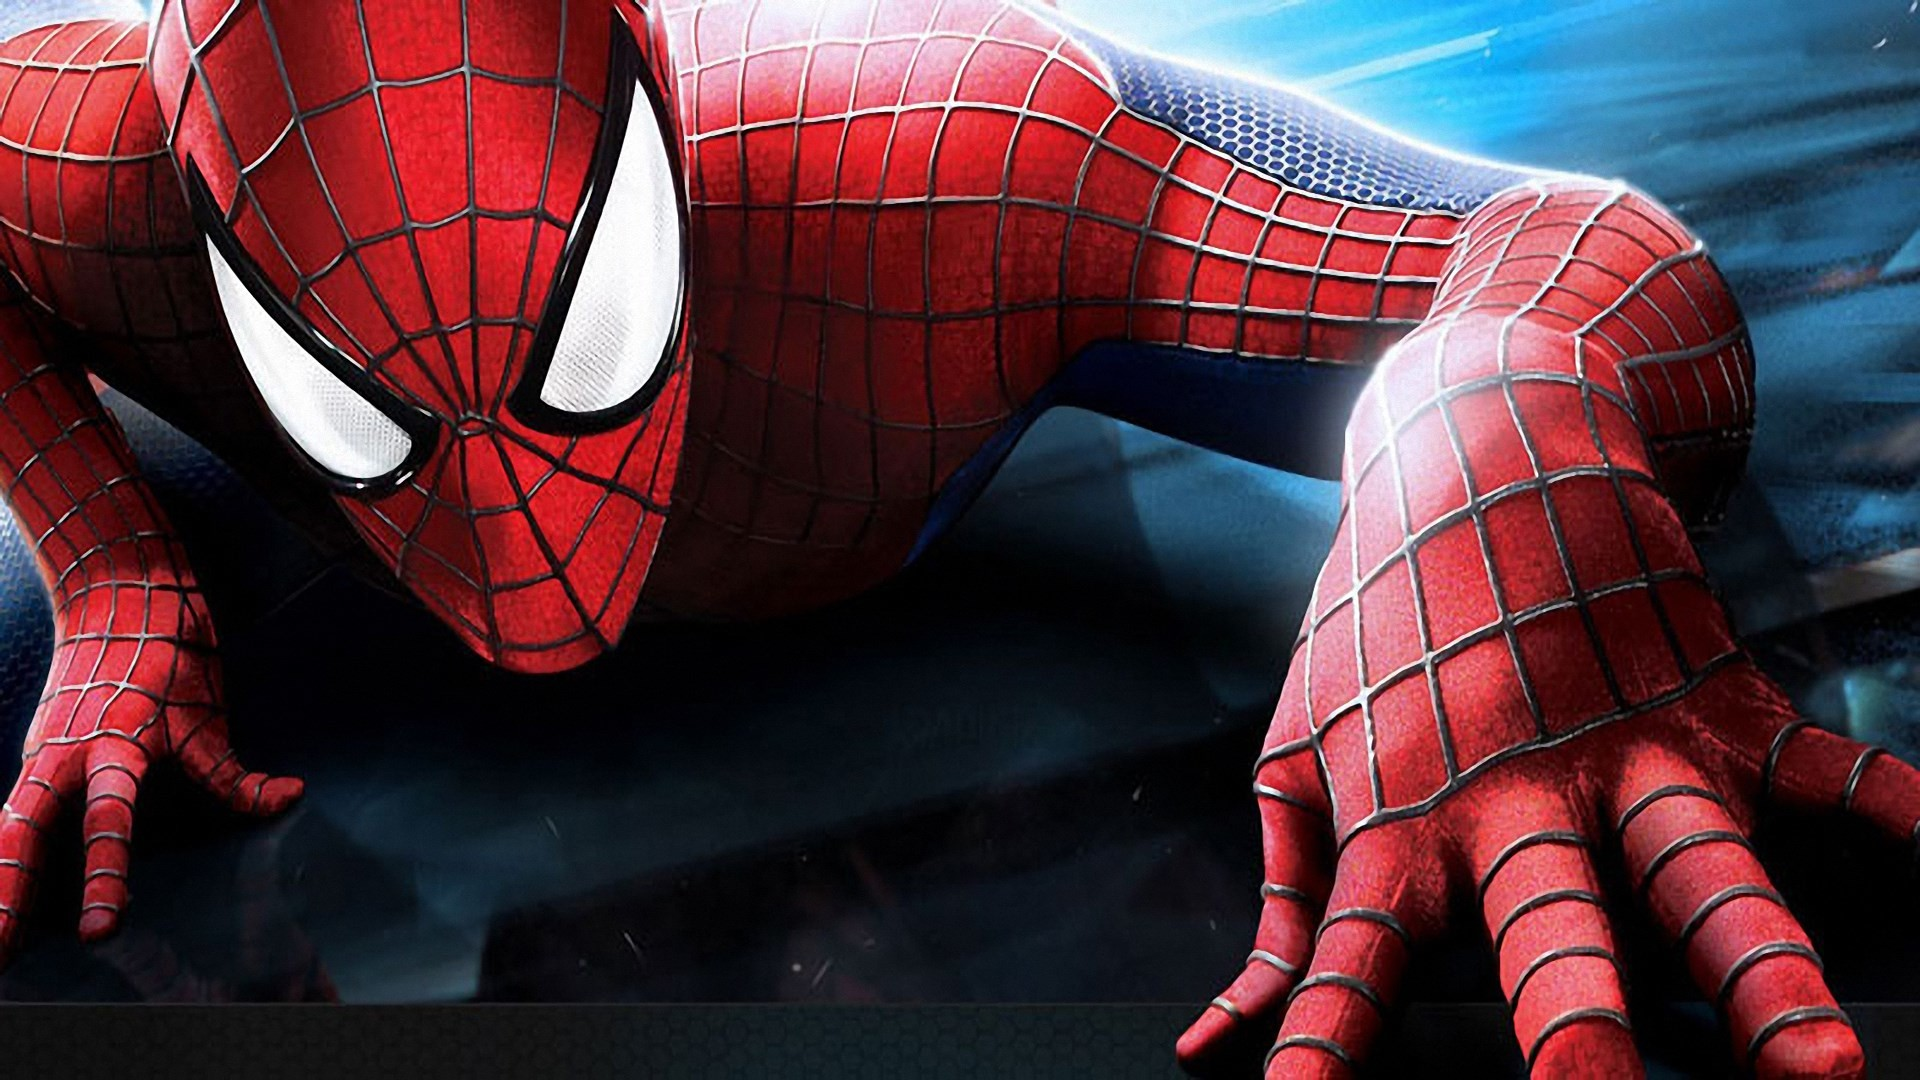 spiderman movie wallpaper for iphone | sharovarka | Pinterest | Spiderman  movie and Movie wallpapers